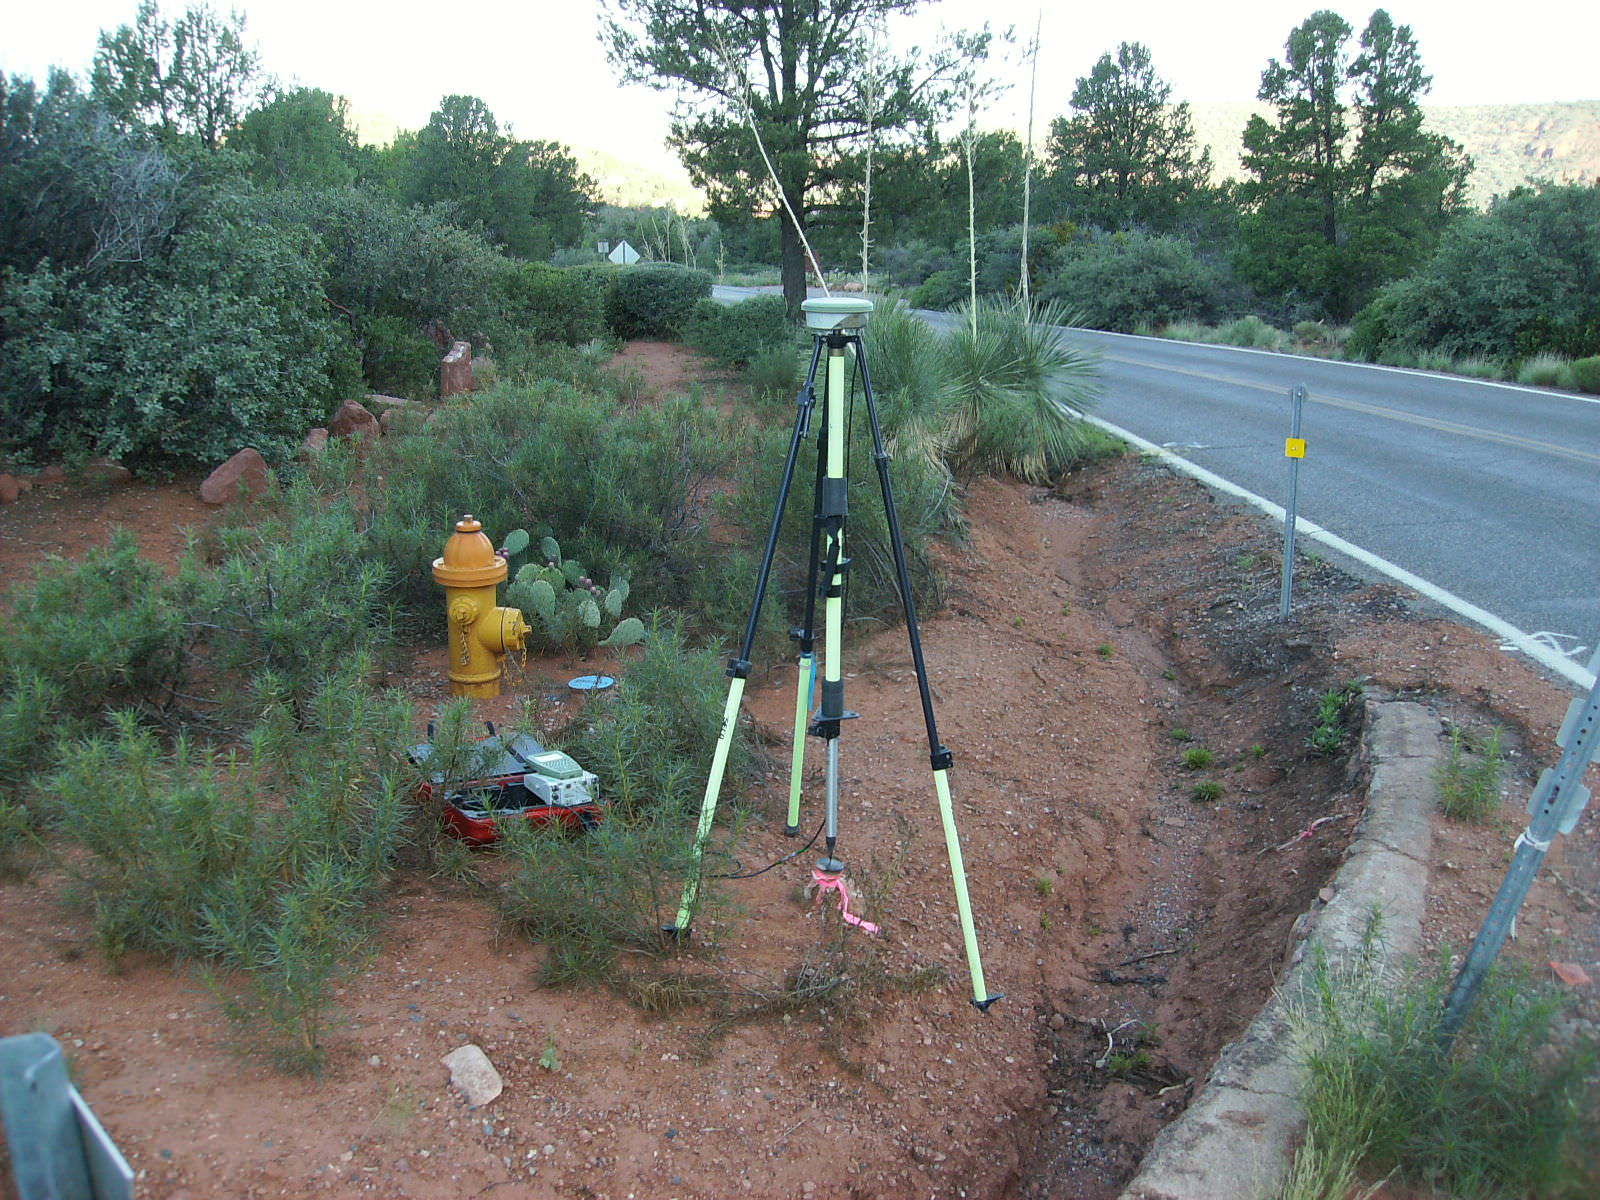 State Route 89A Topo Survey